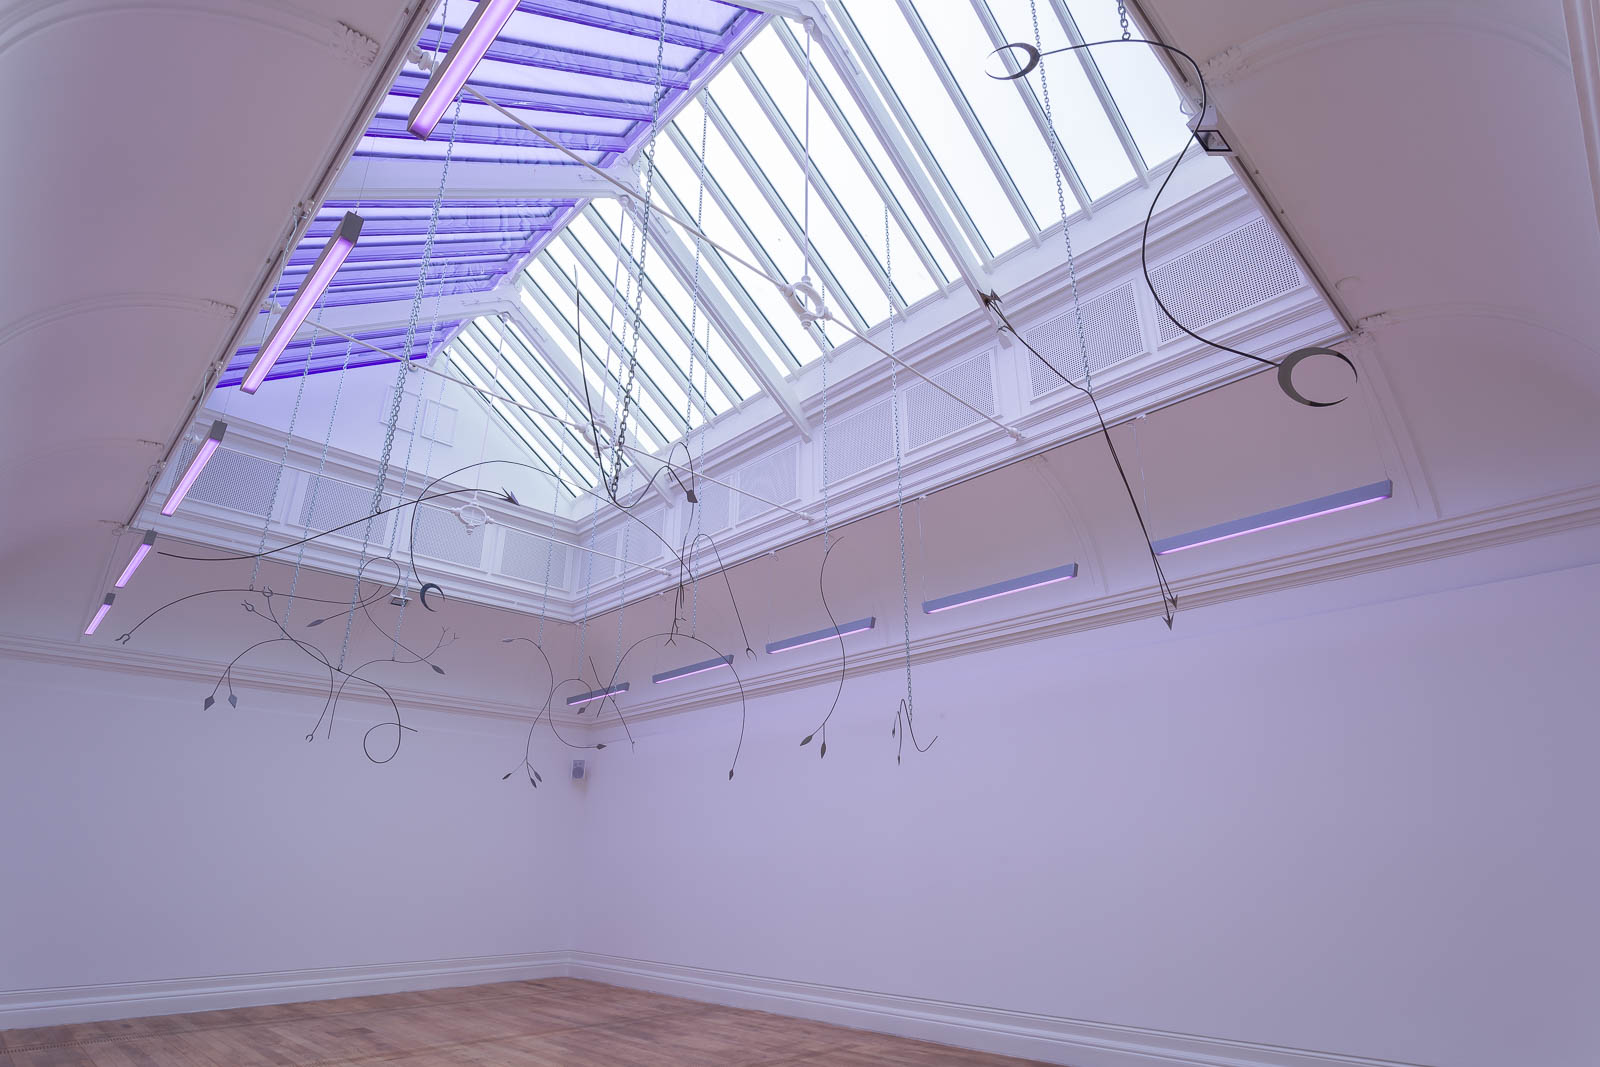 Tarek Lakhrissi, Unfinished Sentence II, 2020. Installation of 30 metal spears and performance with chains, colour filter, loud speakers. MOSTYN, Llandudno, UK. Photographer: Mark Blower.